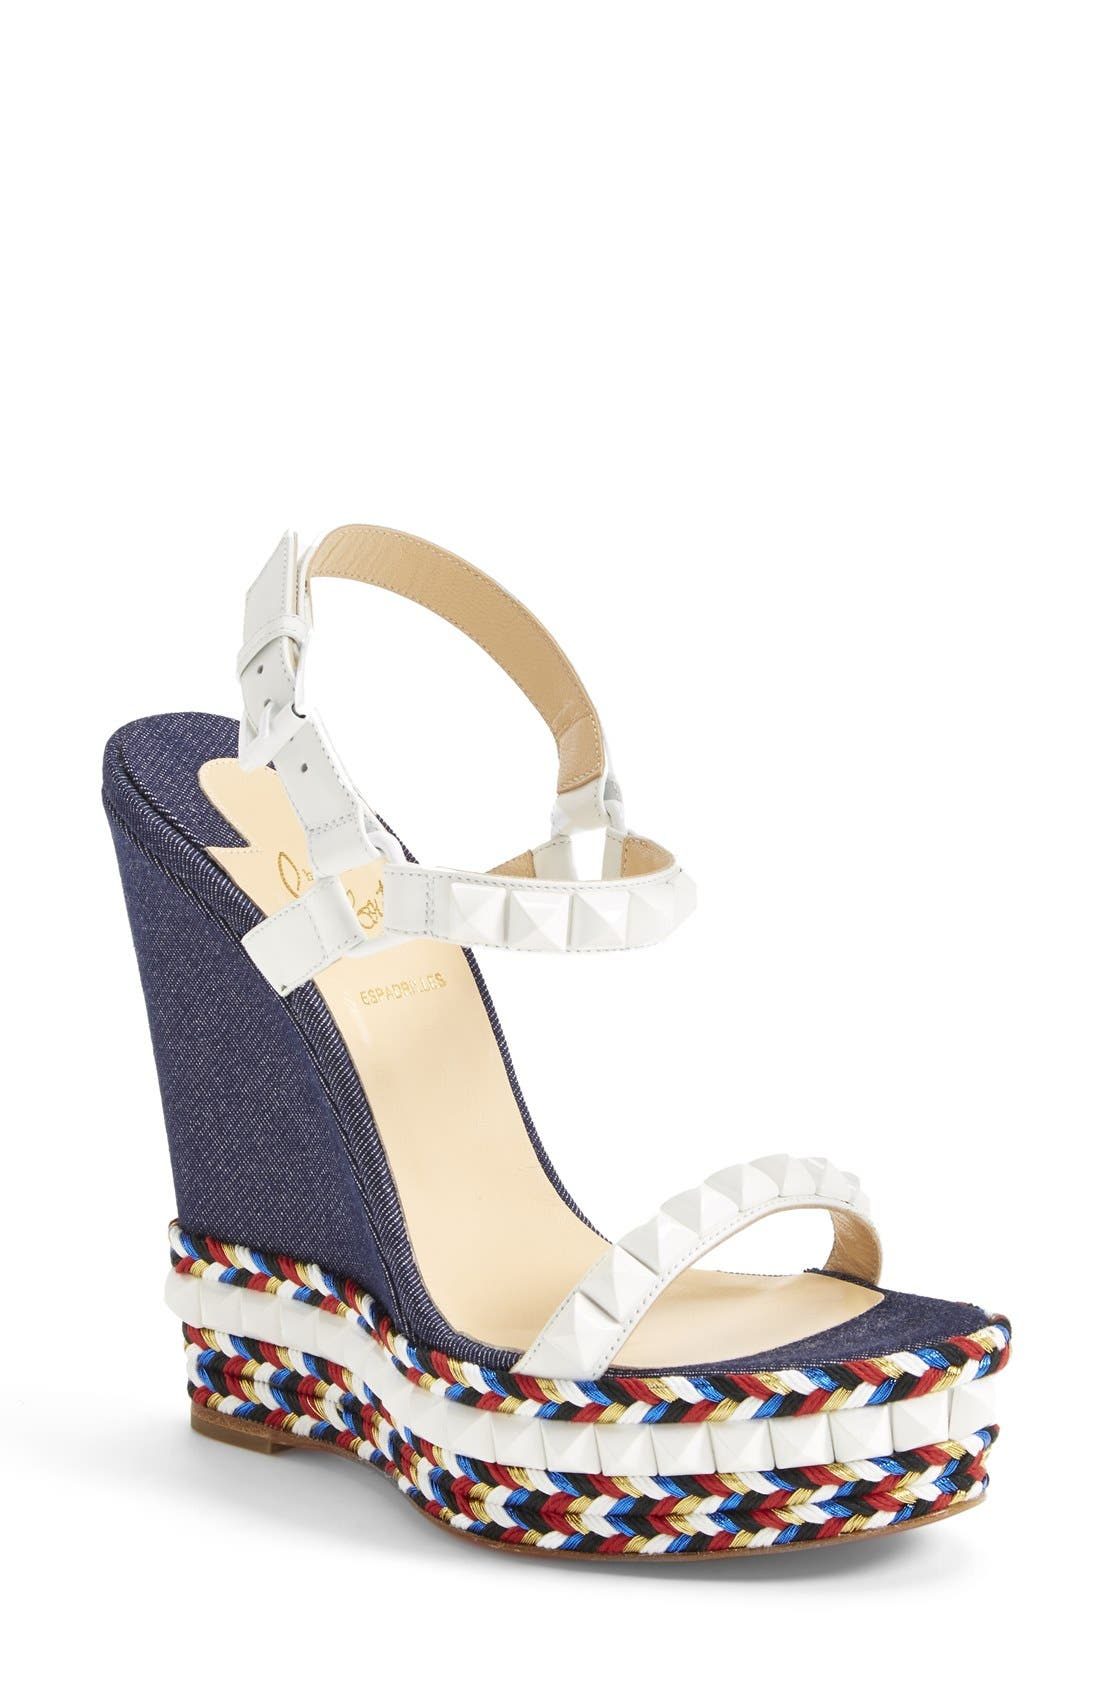 Alternate Image 1 Selected - Christian Louboutin 'Cataclou' Wedge Sandal